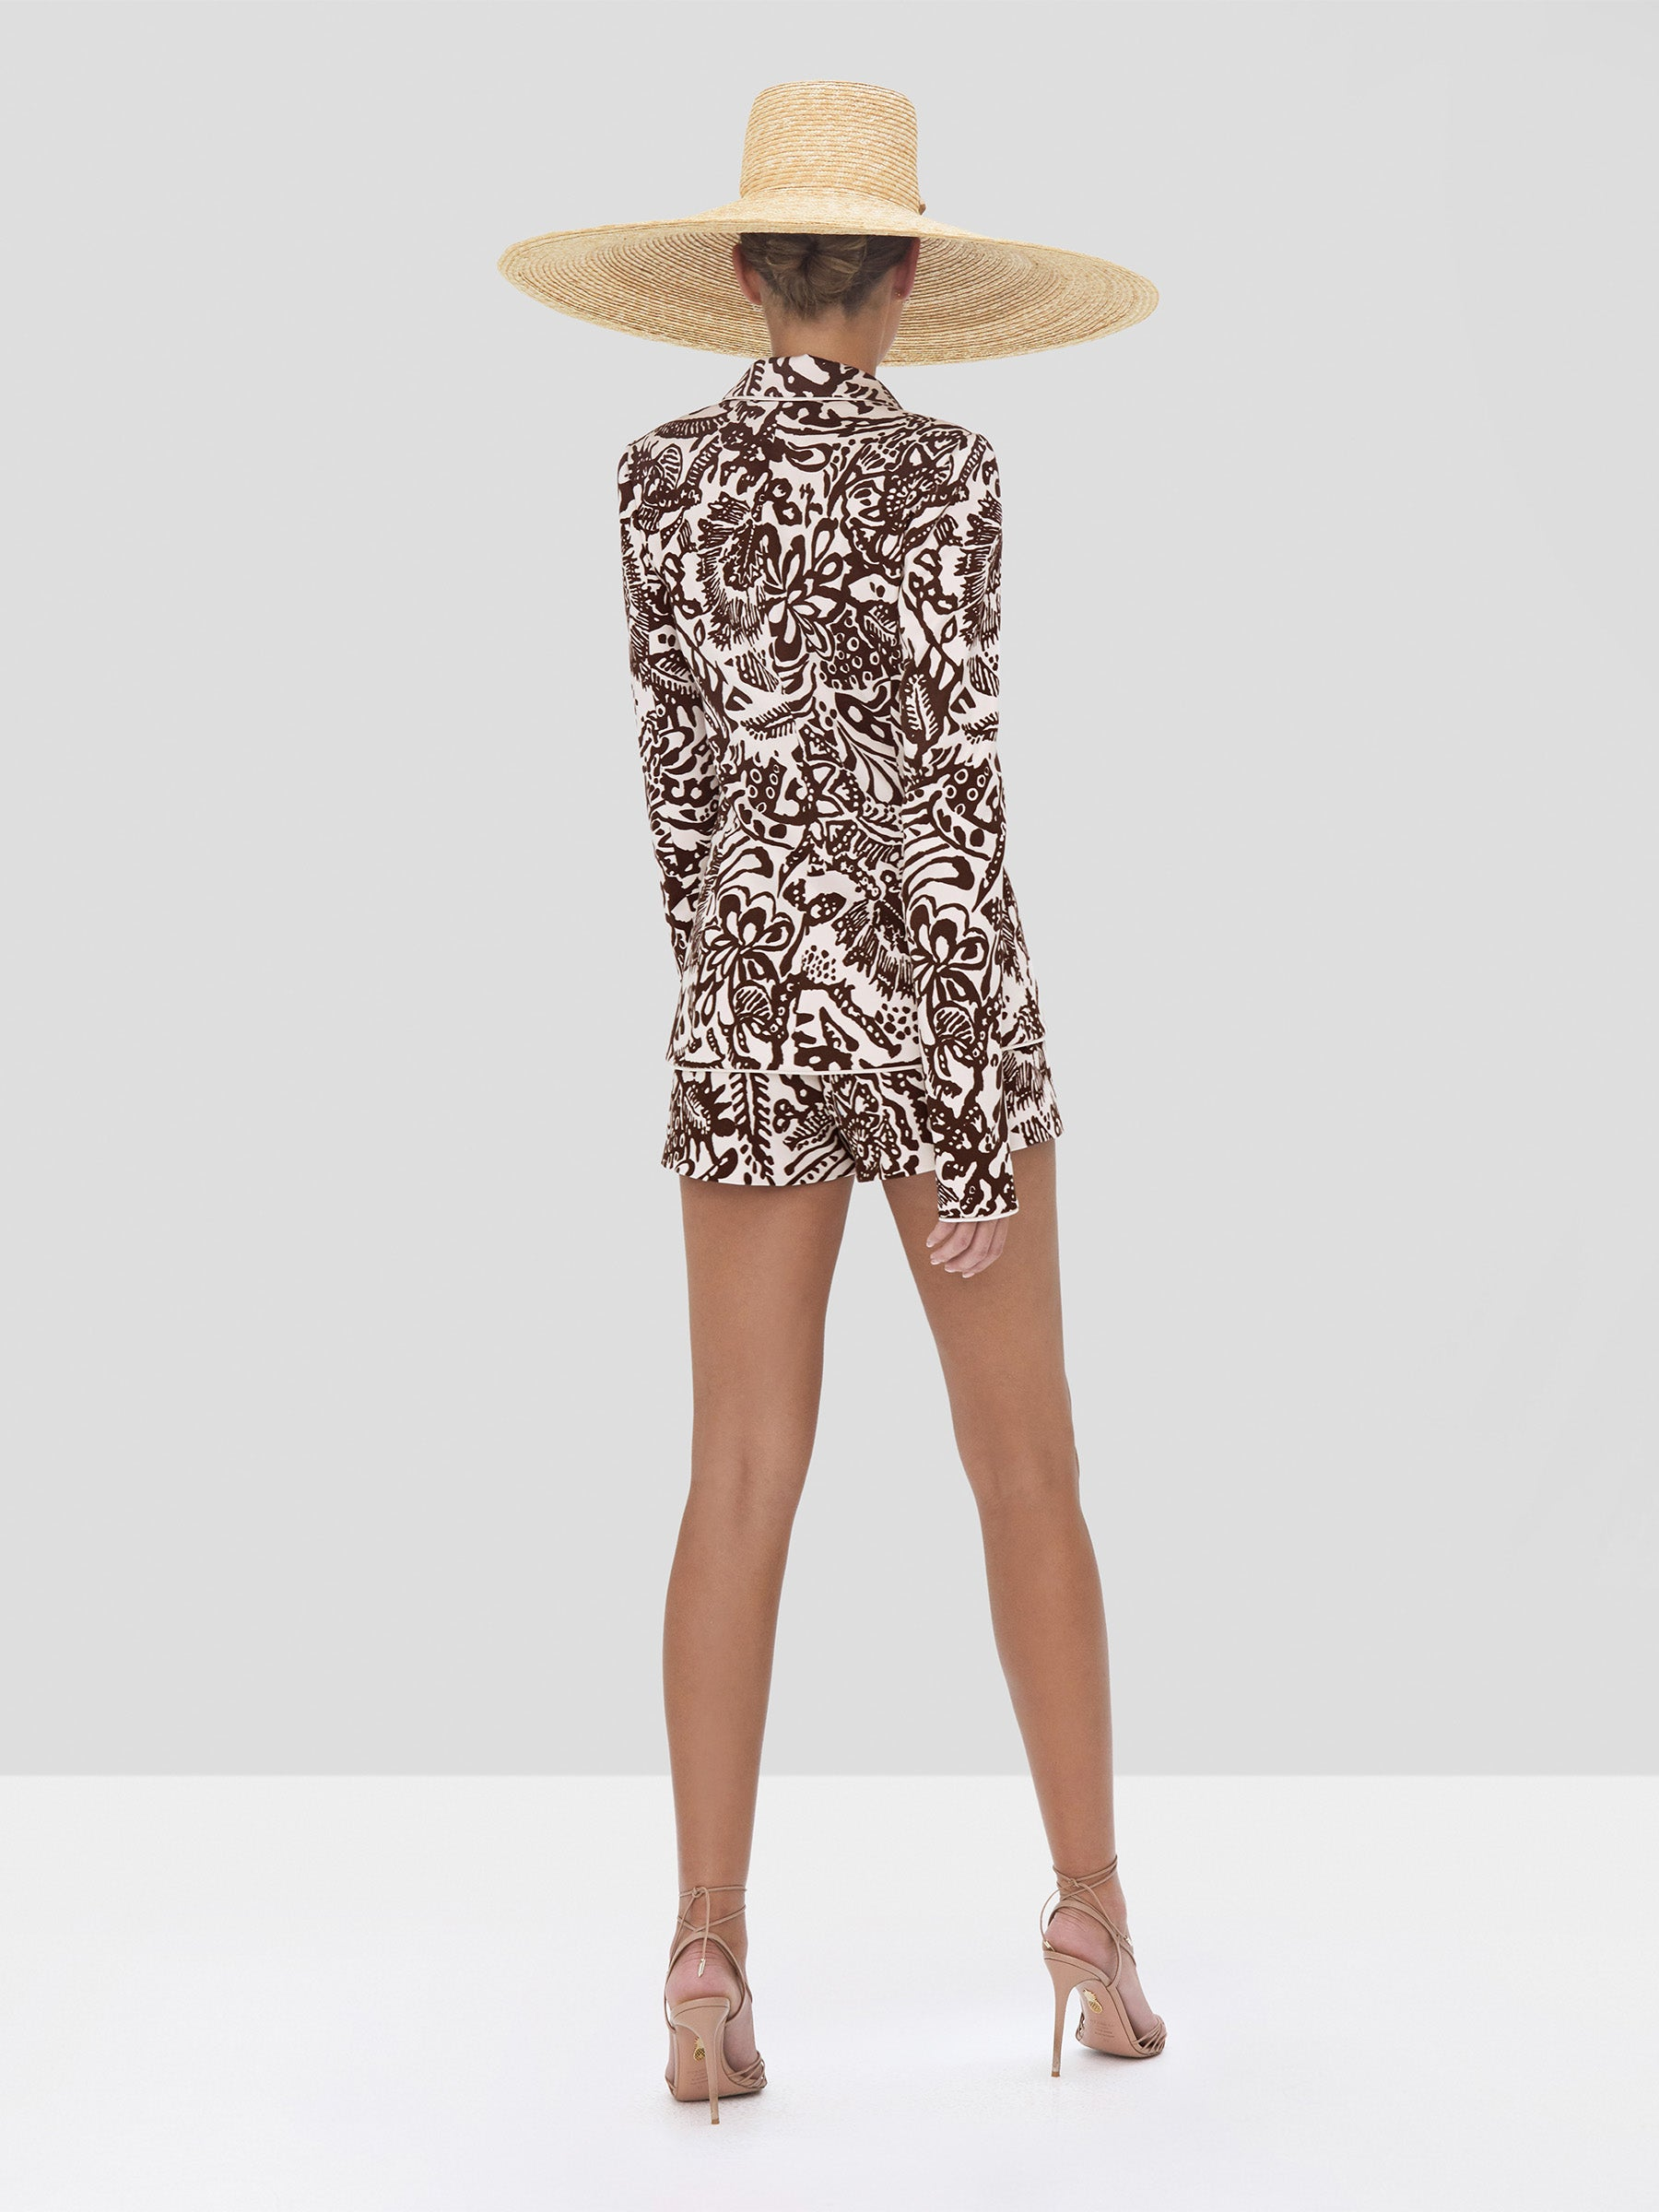 Alexis Tika Jacket and Lew Short in Tropical Brown from Spring Summer 2020 Collection - Rear View